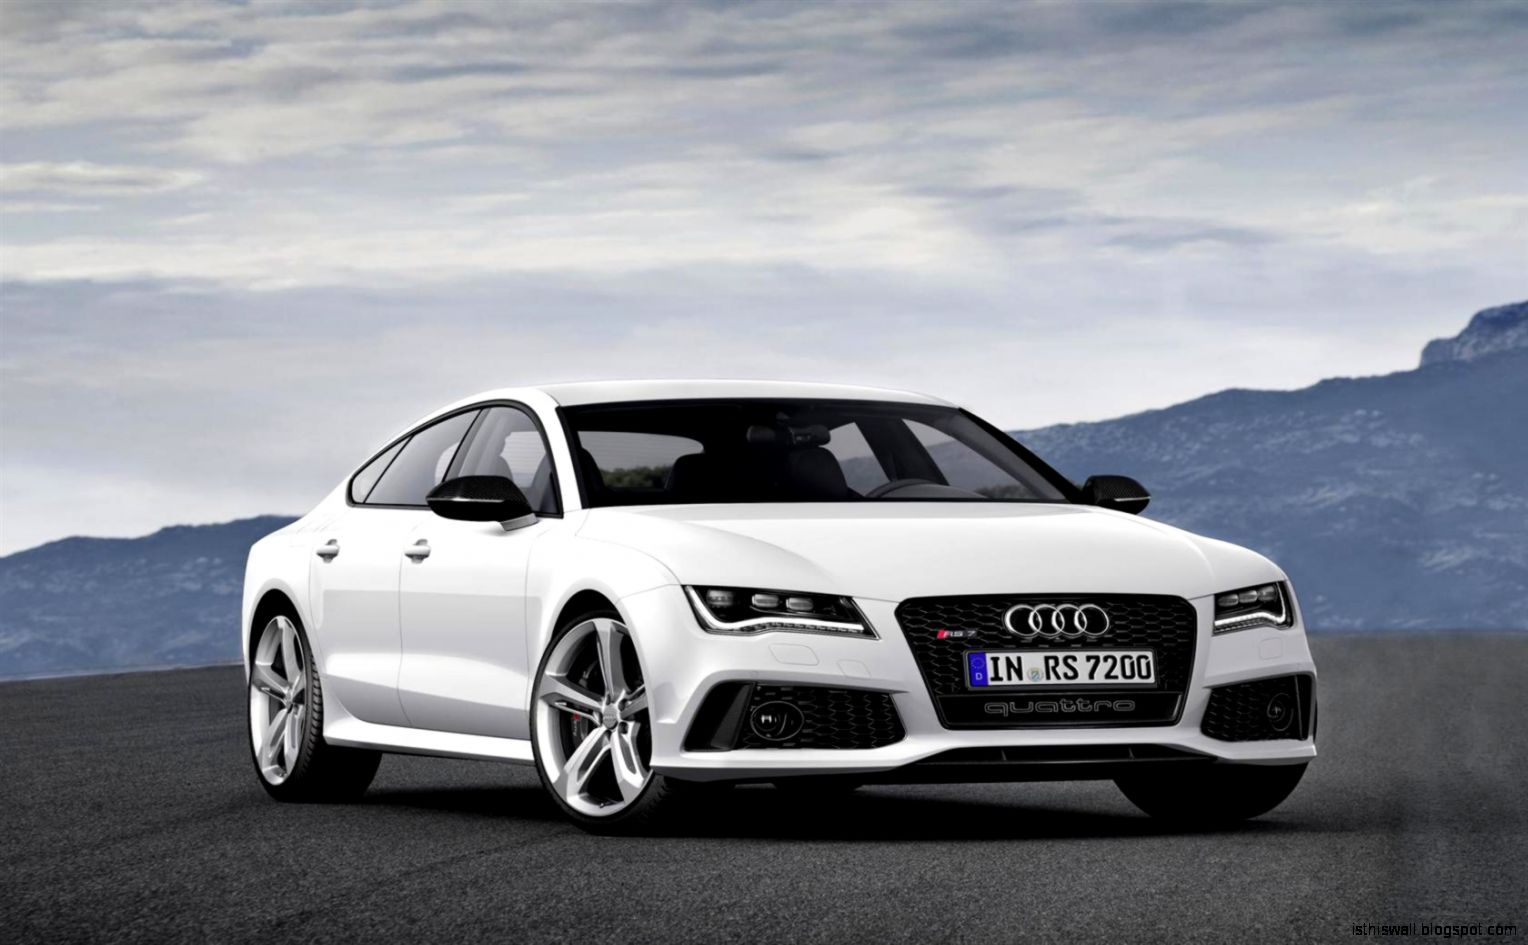 2014 Audi RS 7 Images Photo Audi RS 7 2014 Image 08 1680